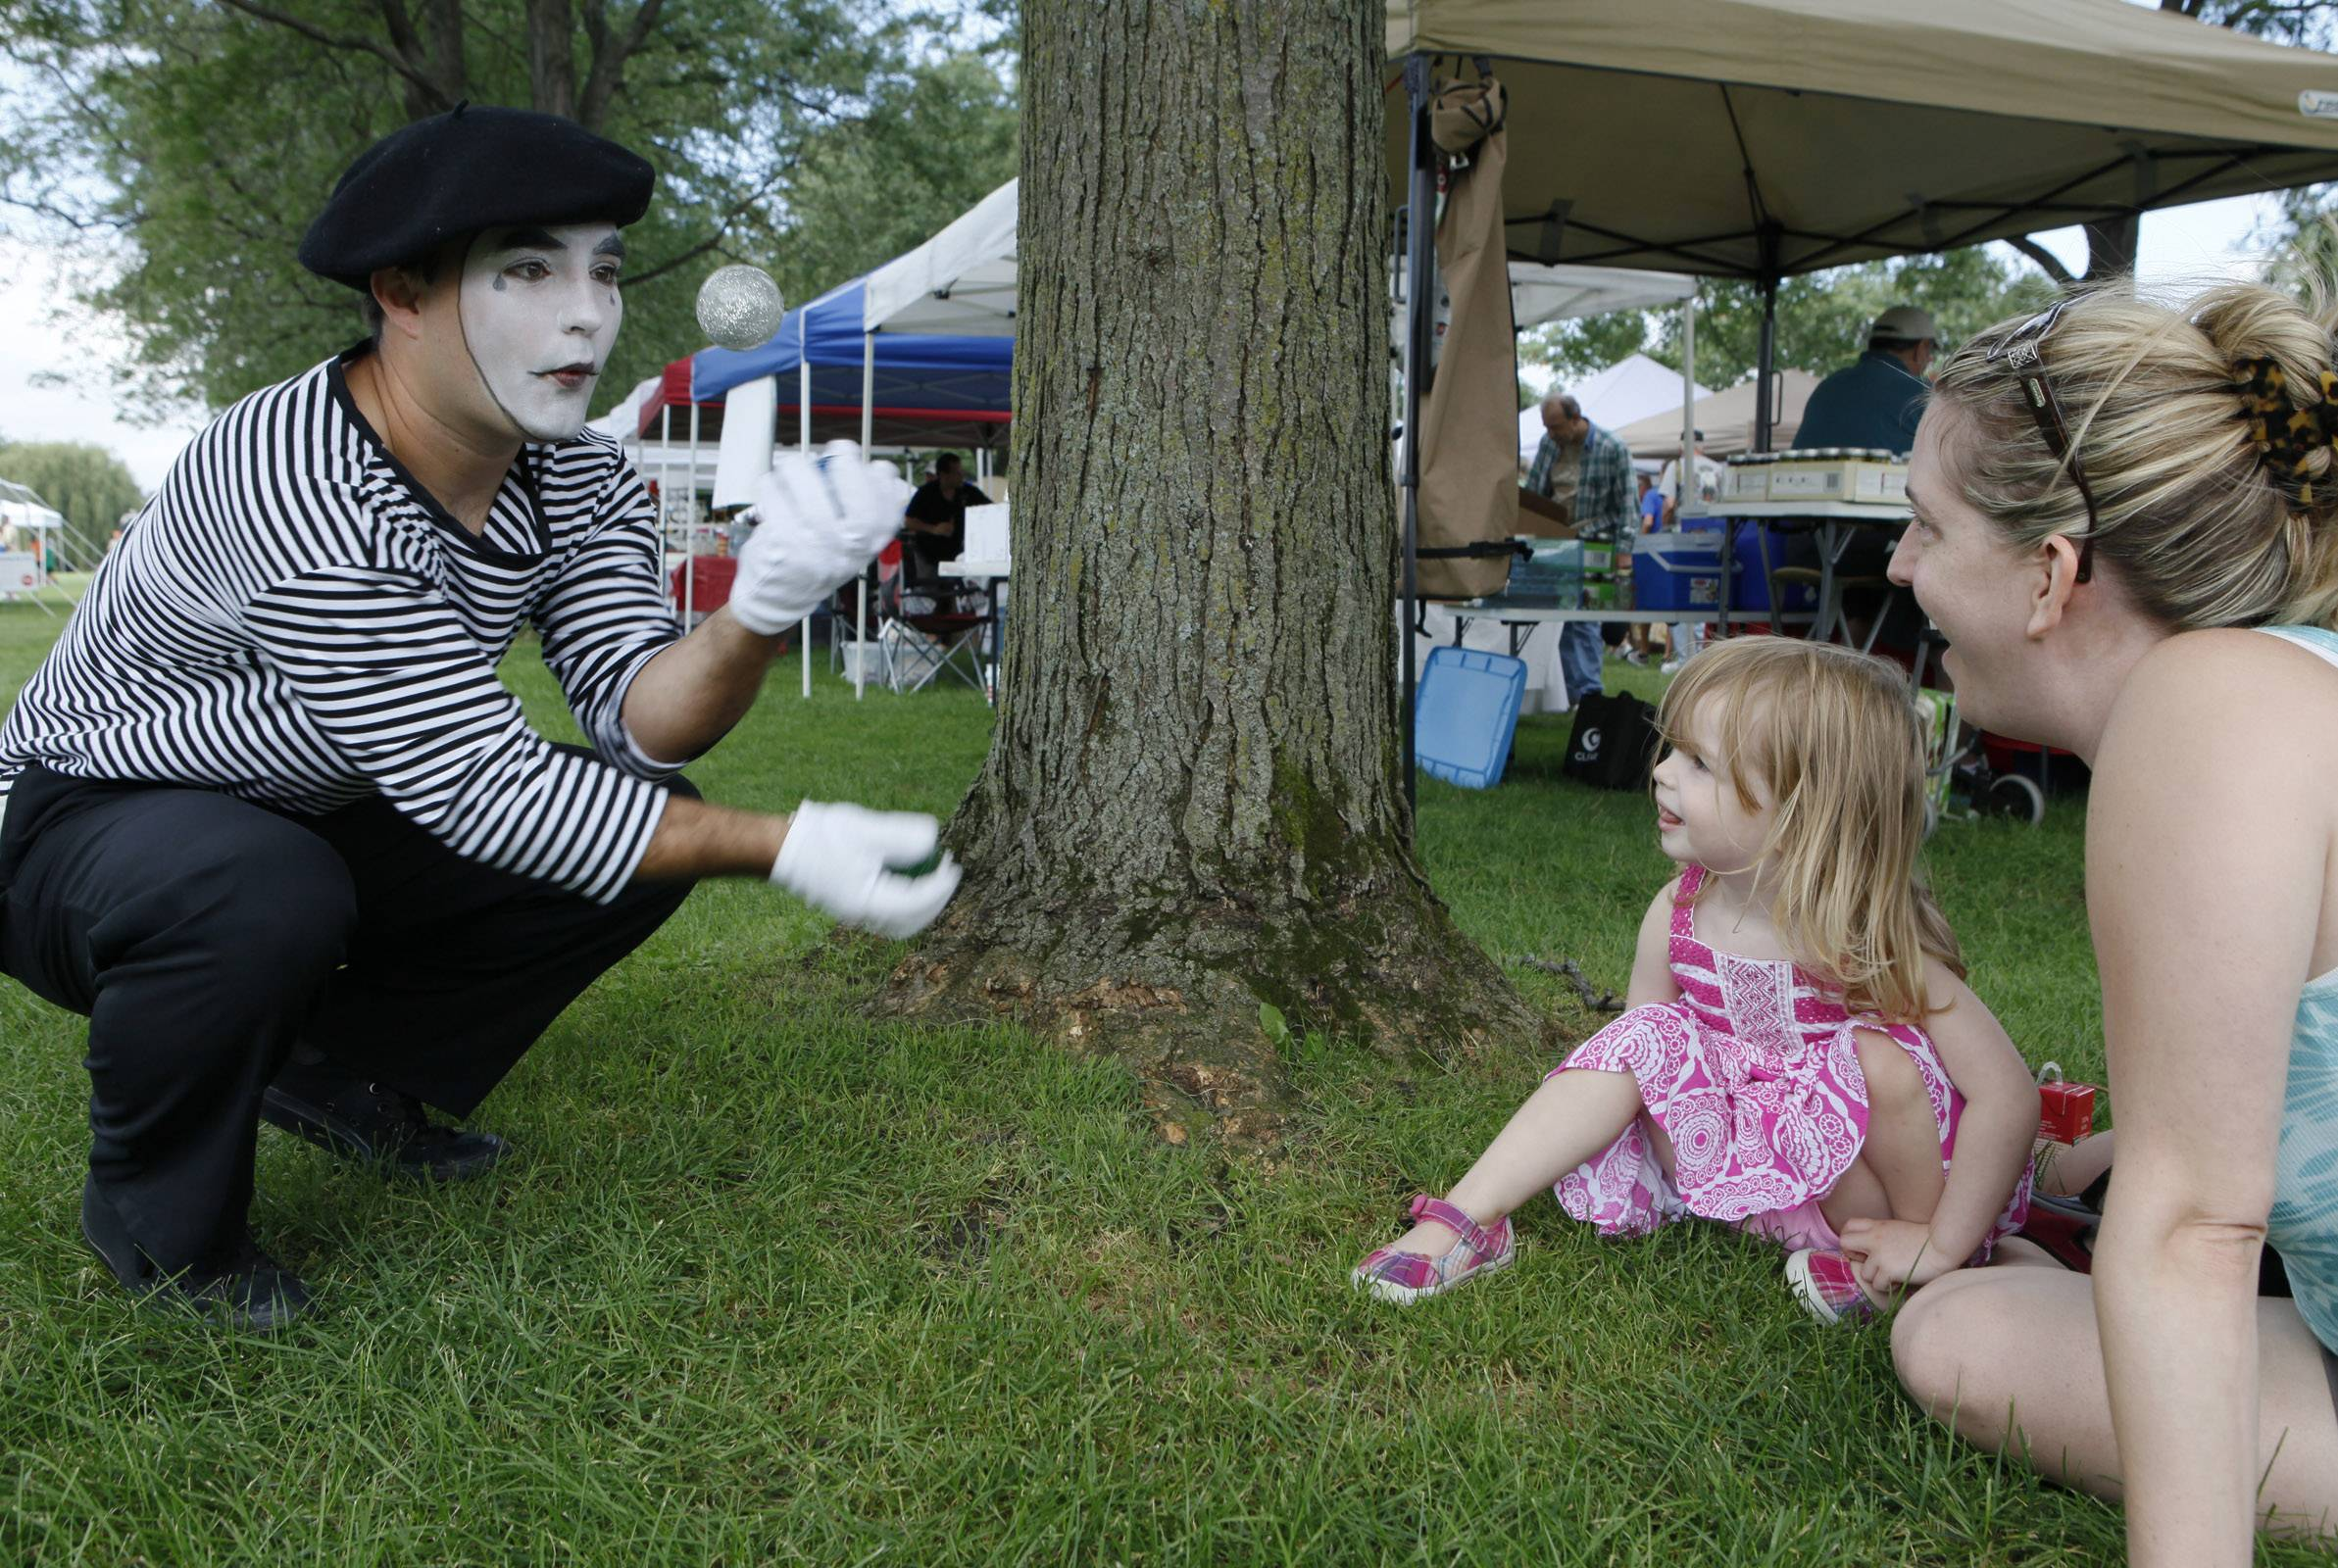 With mimes, music and more, Cantigny Park's French Connection Day highlights the culture of France, which played a big part in the life of founder Robert R. McCormick.